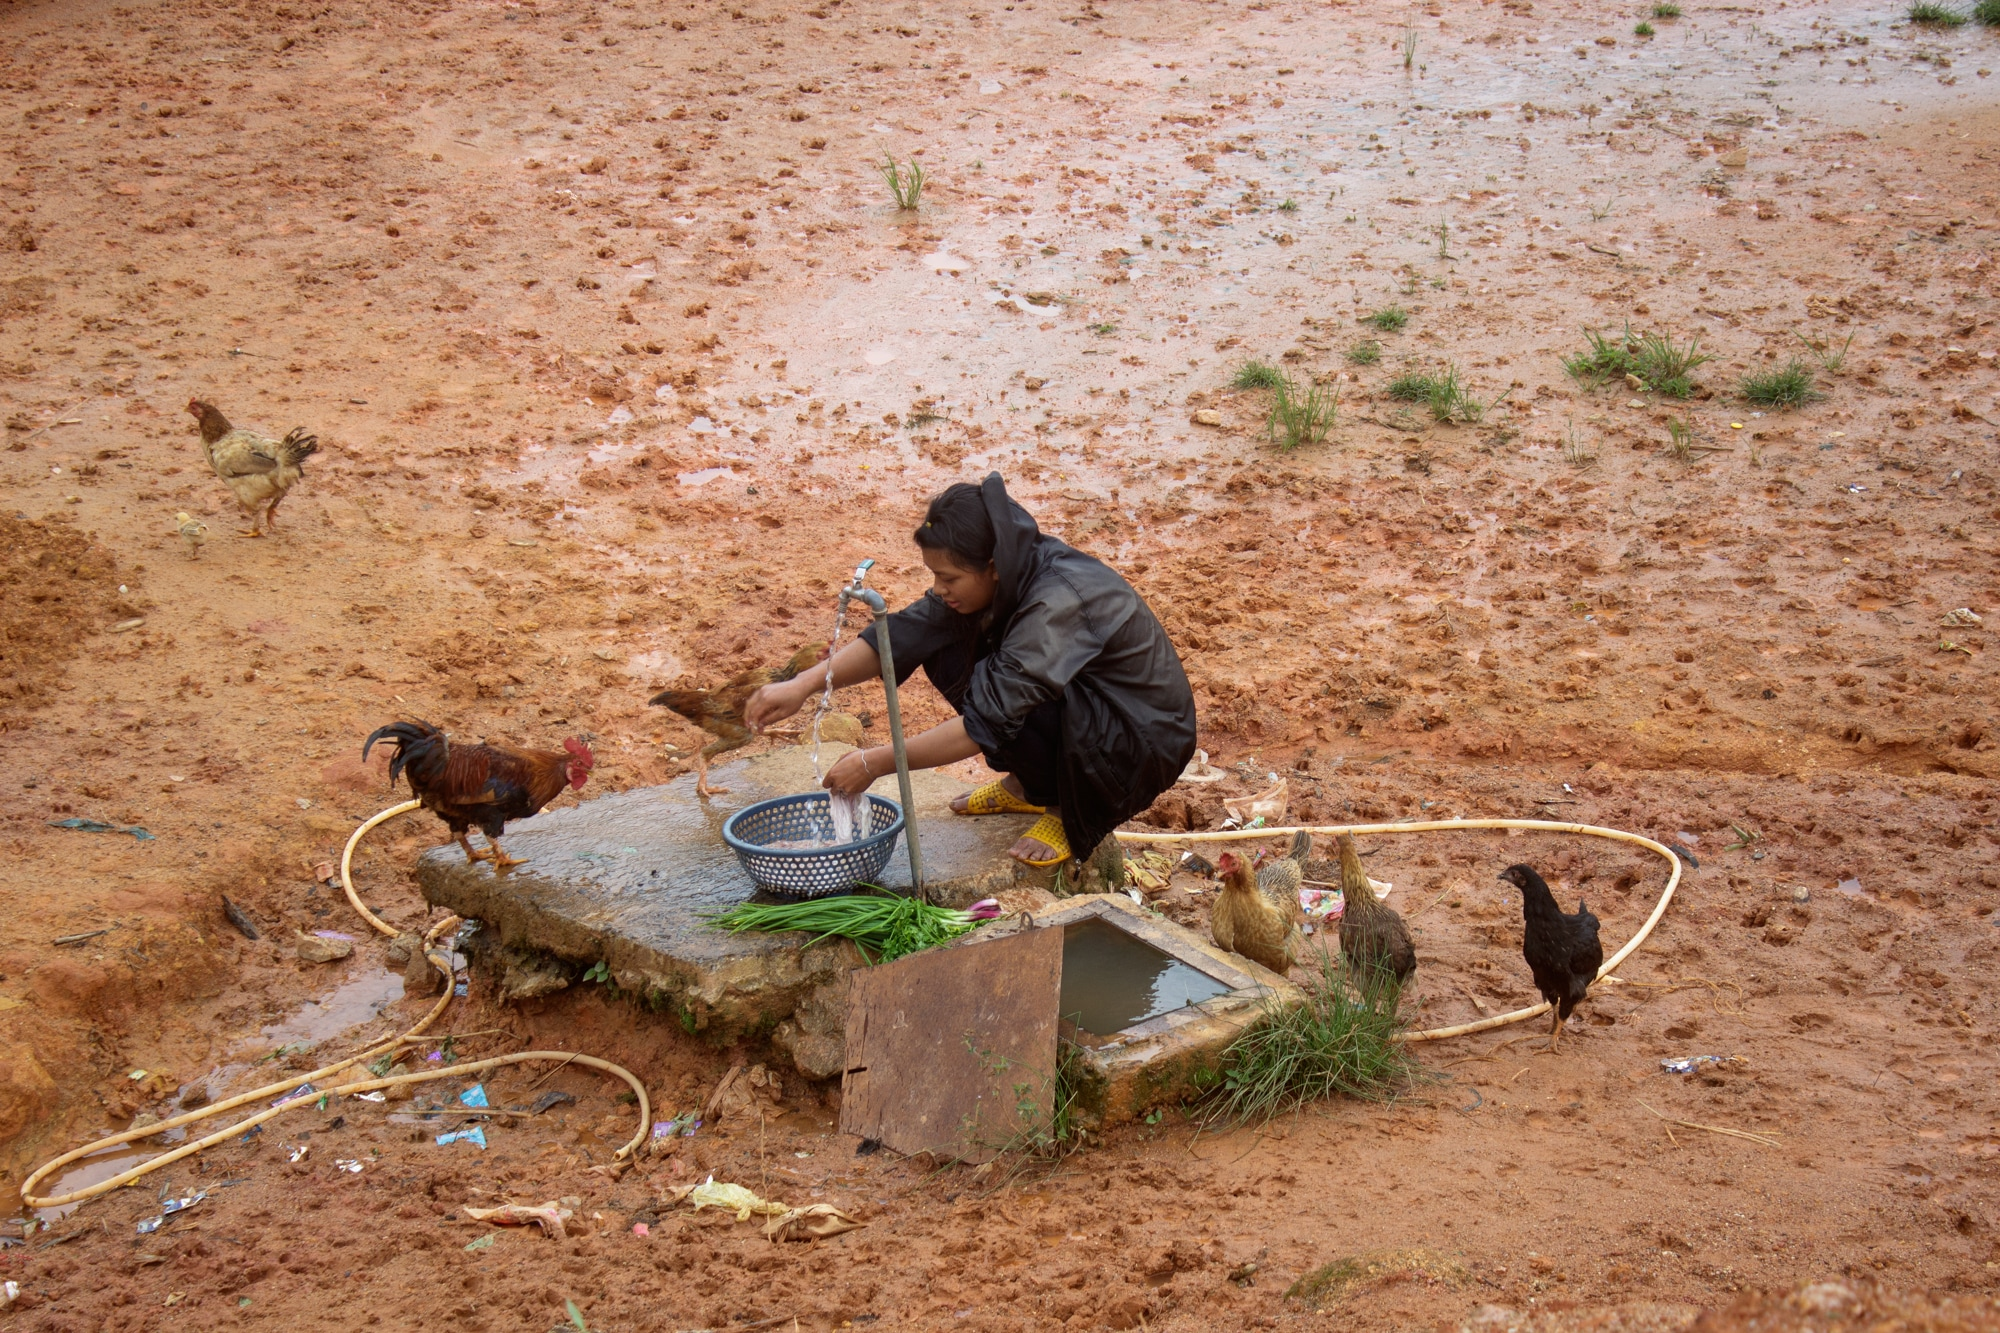 A girl washing vegetables as chickens surround her. Da Lat, Vietnam.